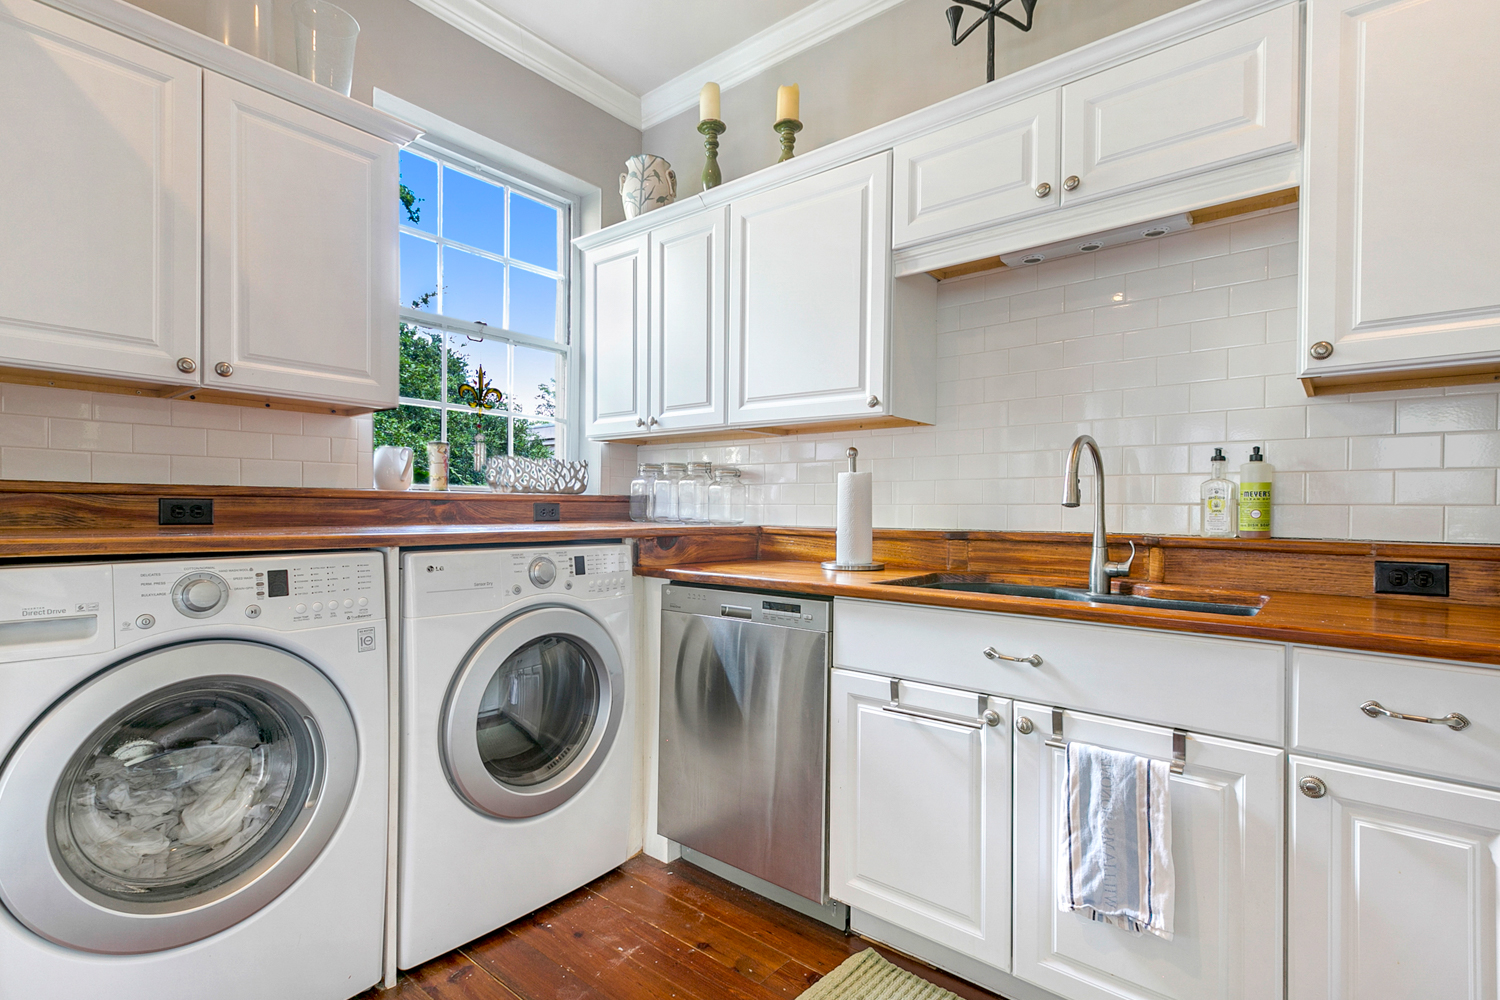 Garden District, Apartment, 2 beds, 1.0 baths, $3000 per month New Orleans Rental - devie image_9